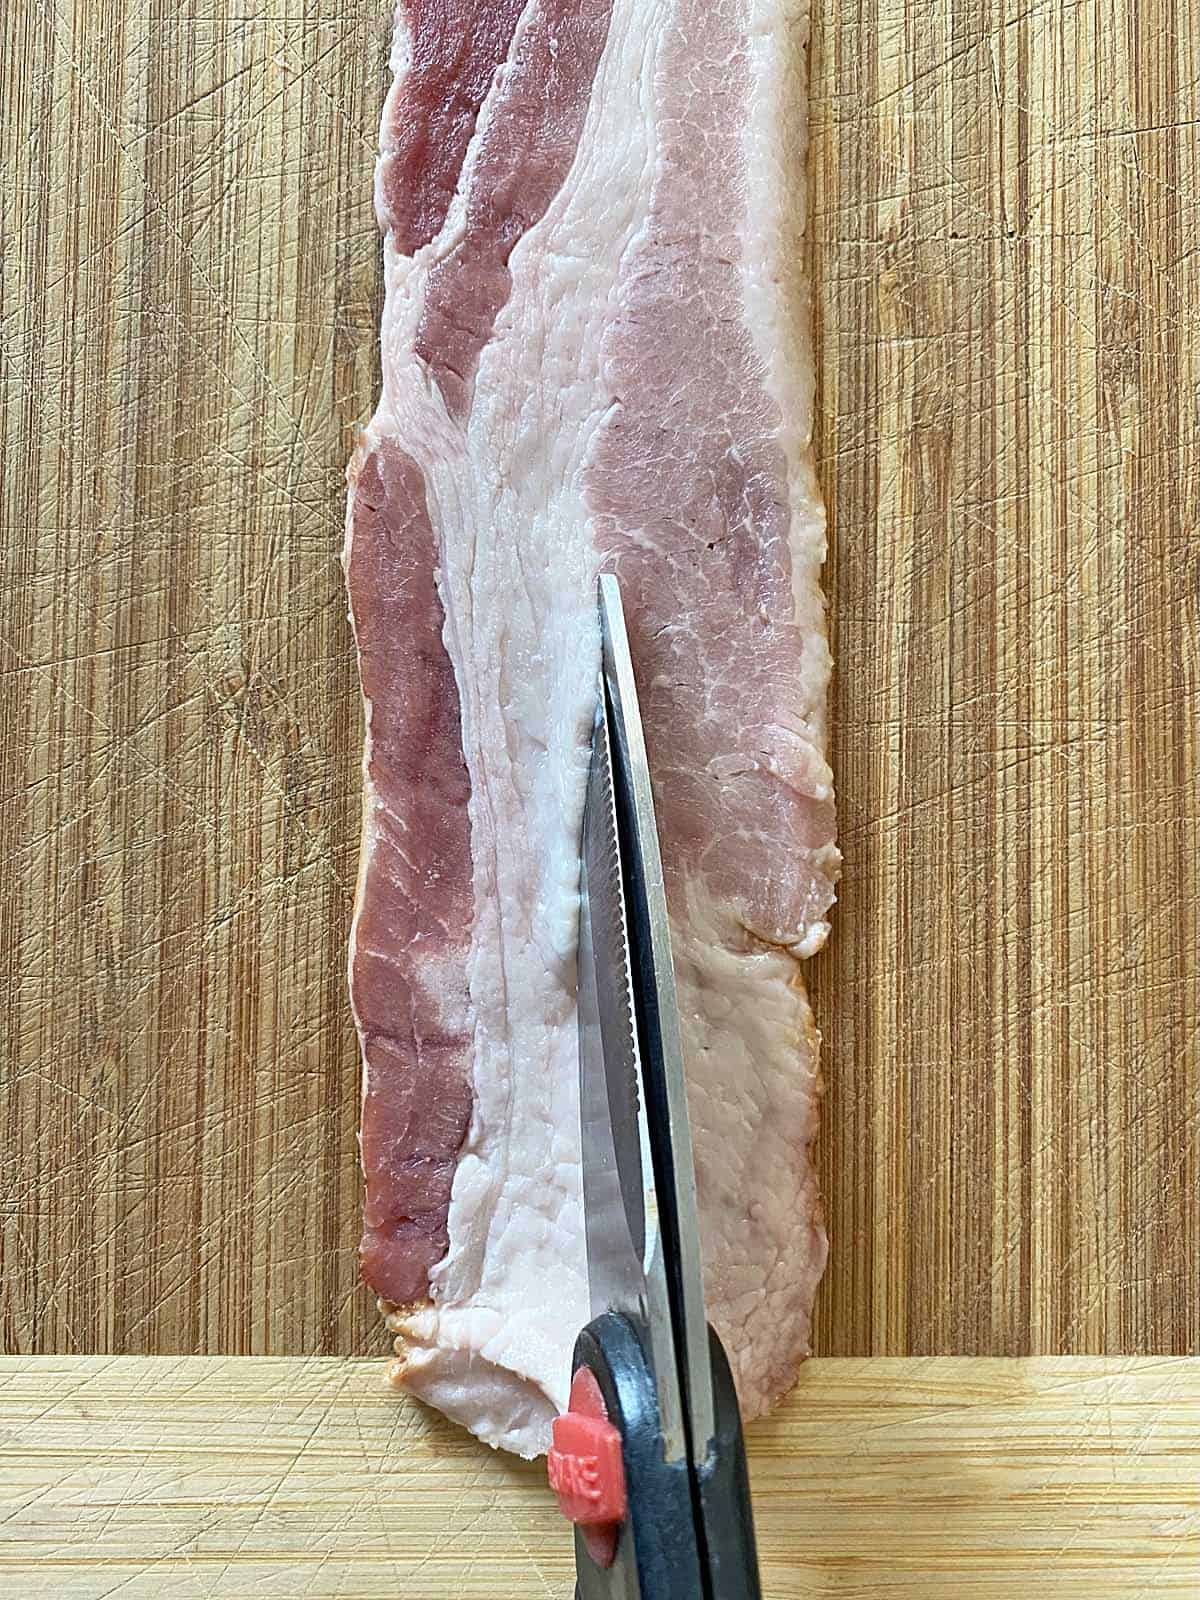 Scissors cutting a piece of bacon lengthwise in a strip